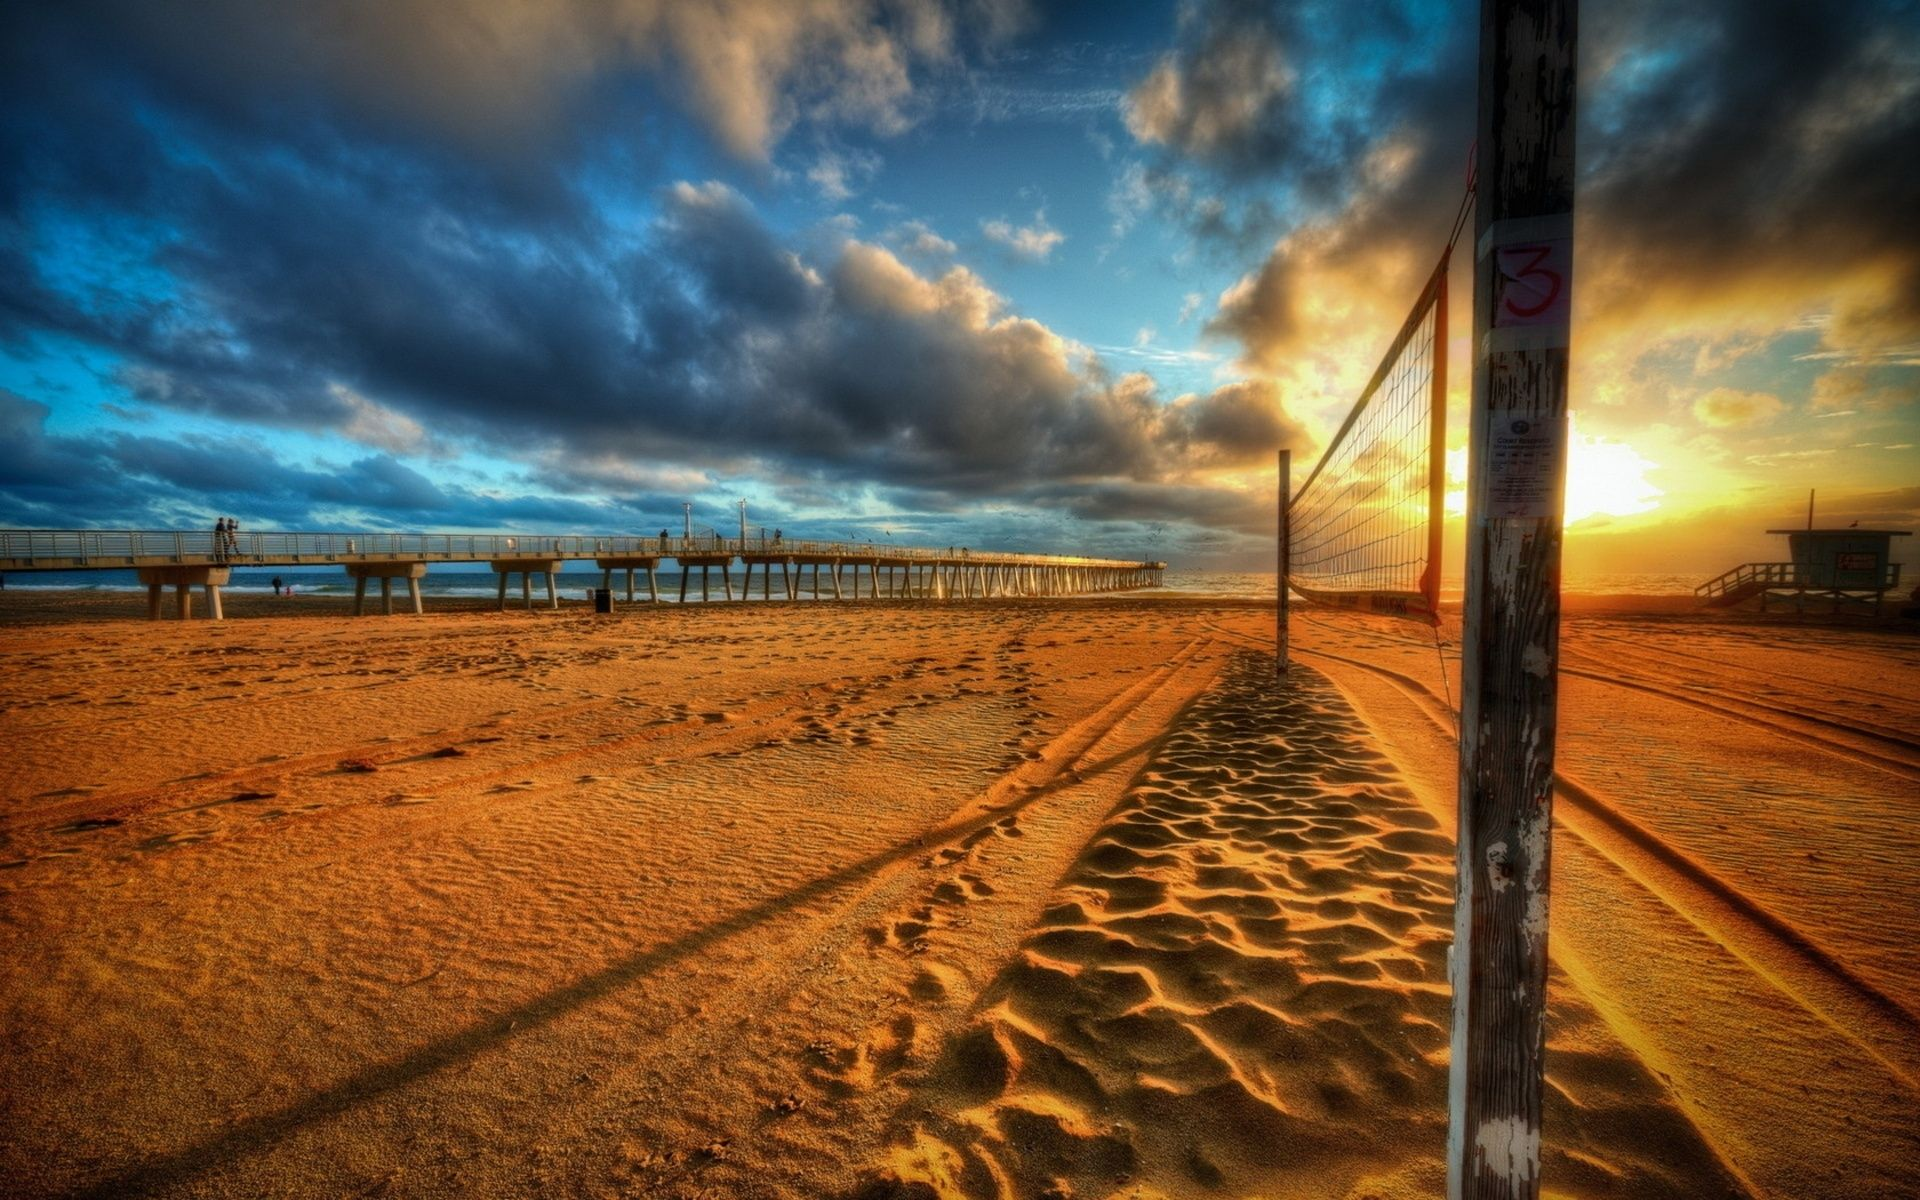 Download Original Grid Beach Volleyball Decline Sand Clouds Sky Colors Wallpaper W Puestas De Sol Fondo De Pantalla De Voleibol Fotografia De Naturaleza